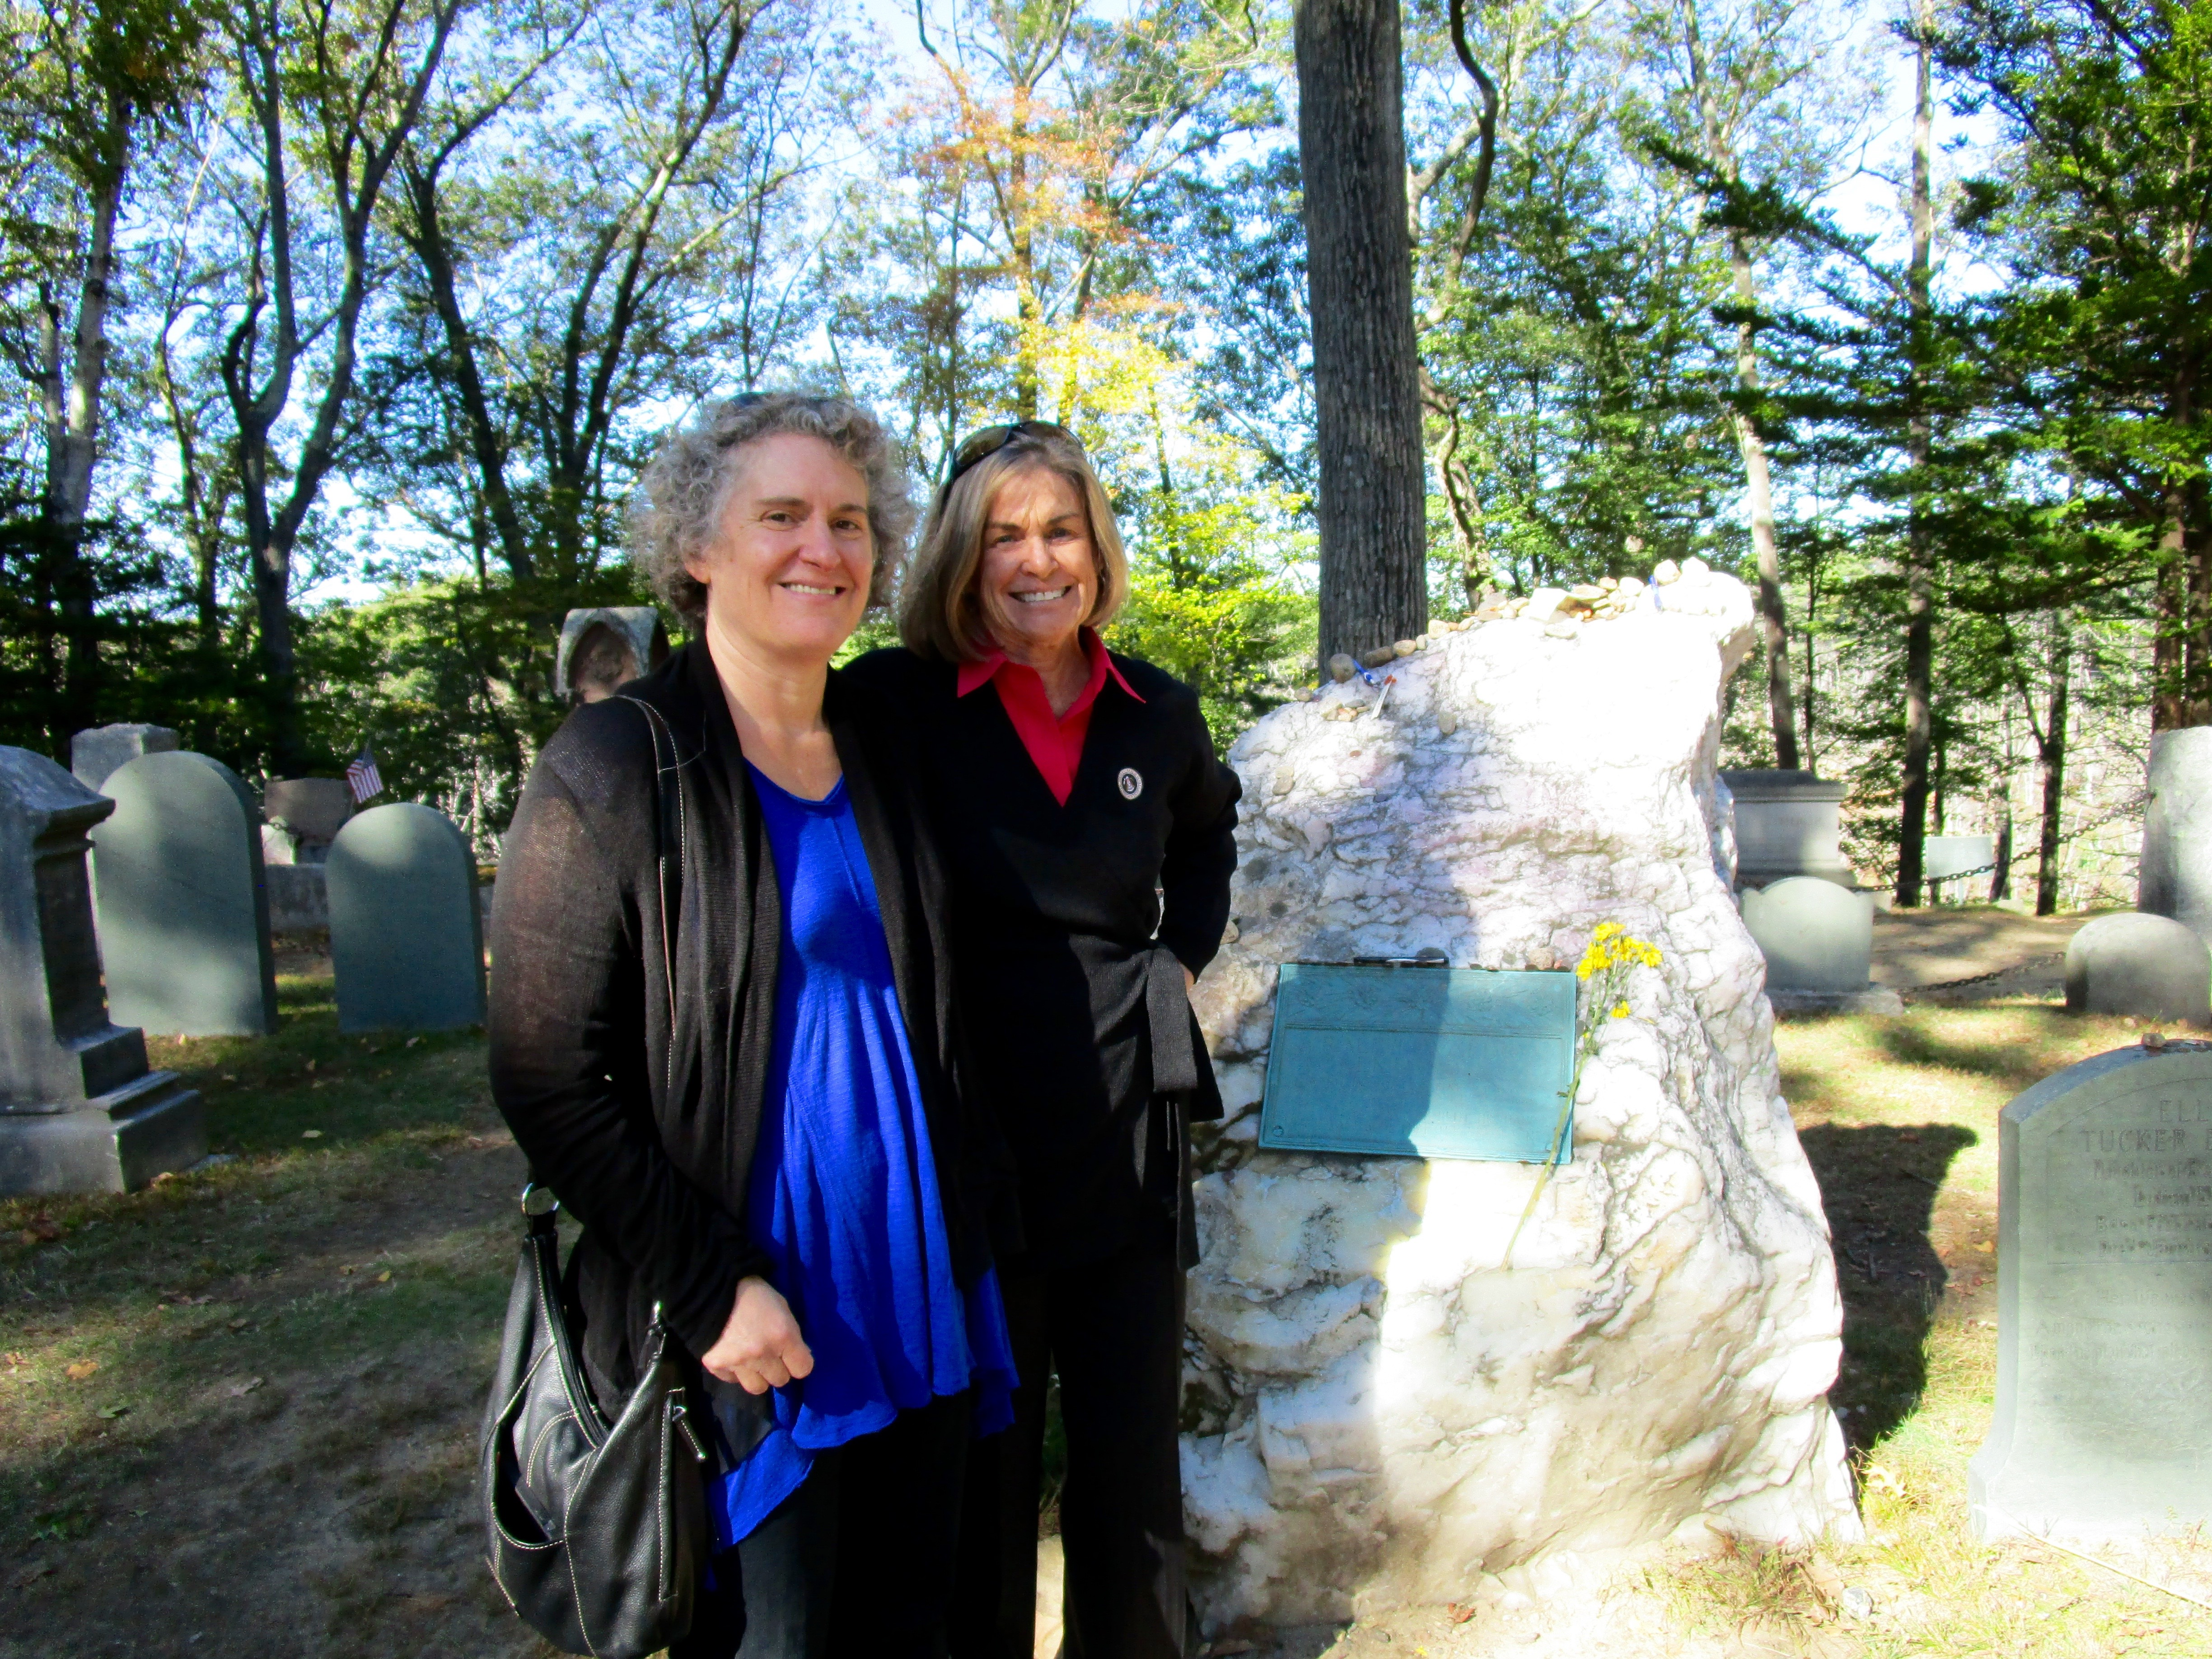 BETSY TOOK ME TO  AUTHORS RIDGE IN  SLEEPY HOLLOW CEMETERY IN CONCORD, MASSACHUSETTS TO SEE THE GRAVESITES OF EMERSON, THOREAU, ALCOTT AND HAWTHORNE. I AM NOT EMBARRASSED TO SAY I WAS THRILLED. THIS IS EMERSON'S TOMBSTONE.